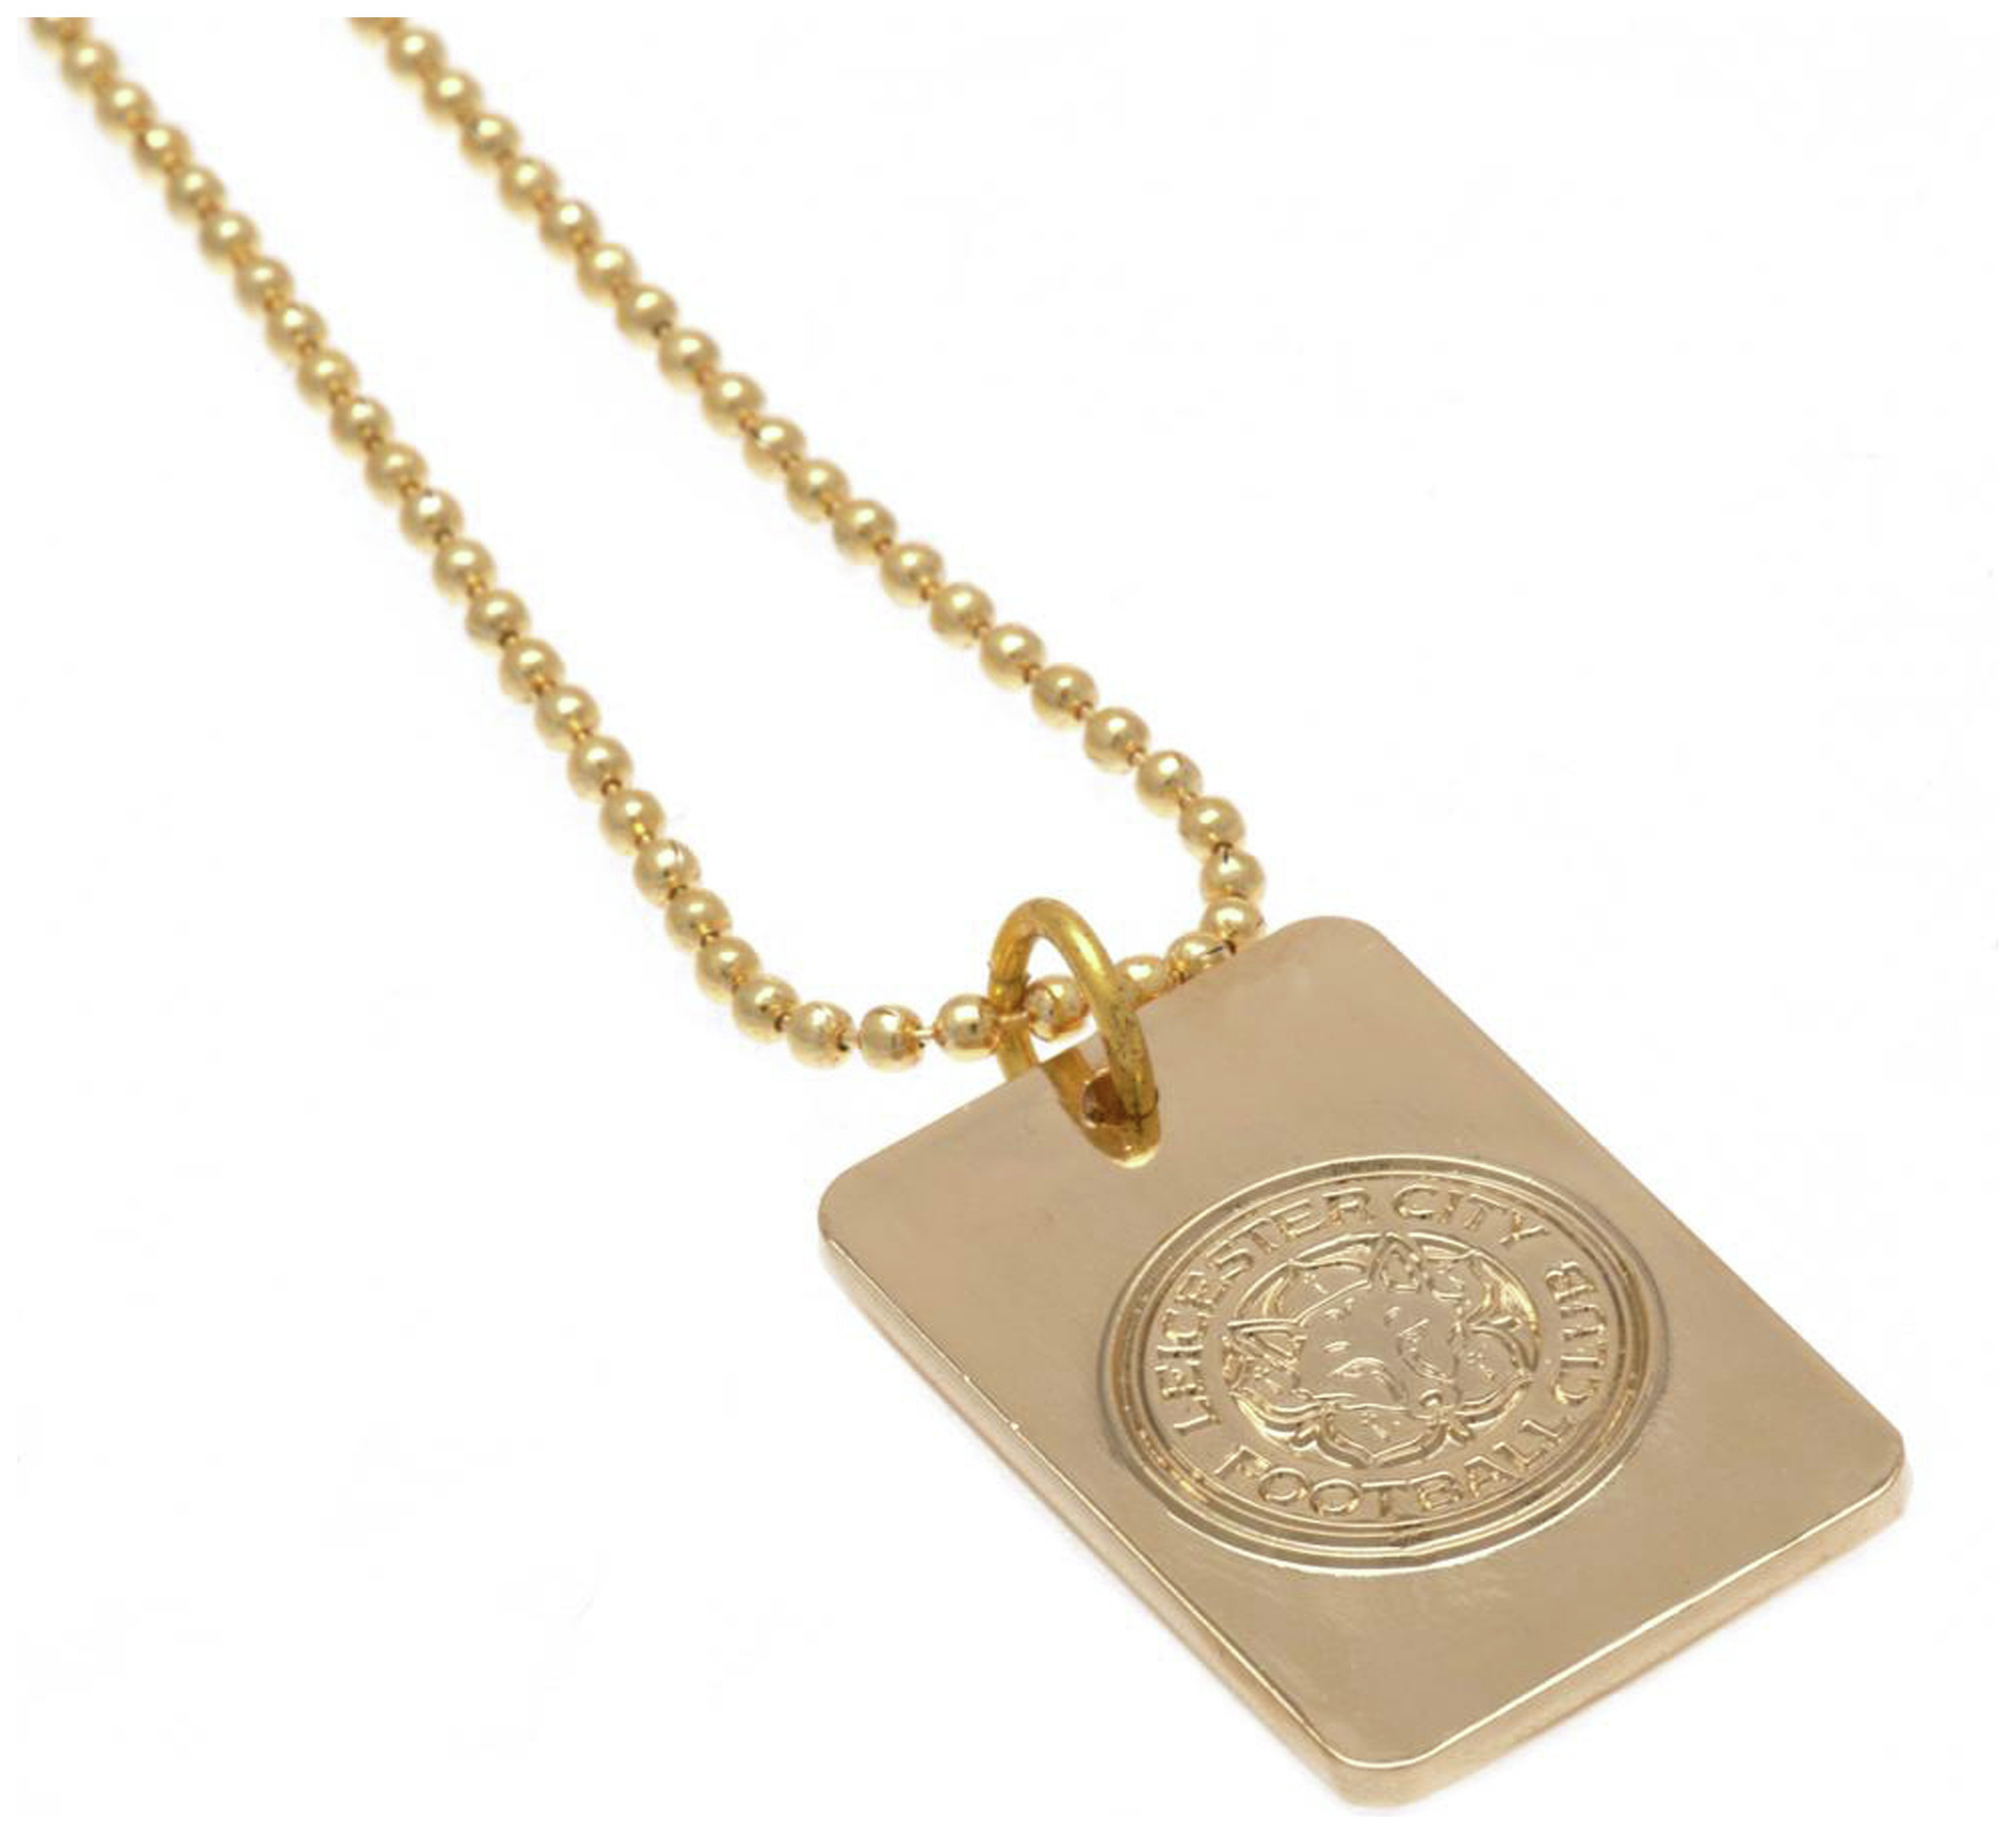 Gold Plated Leicester City Dog Tag & Ball Chain